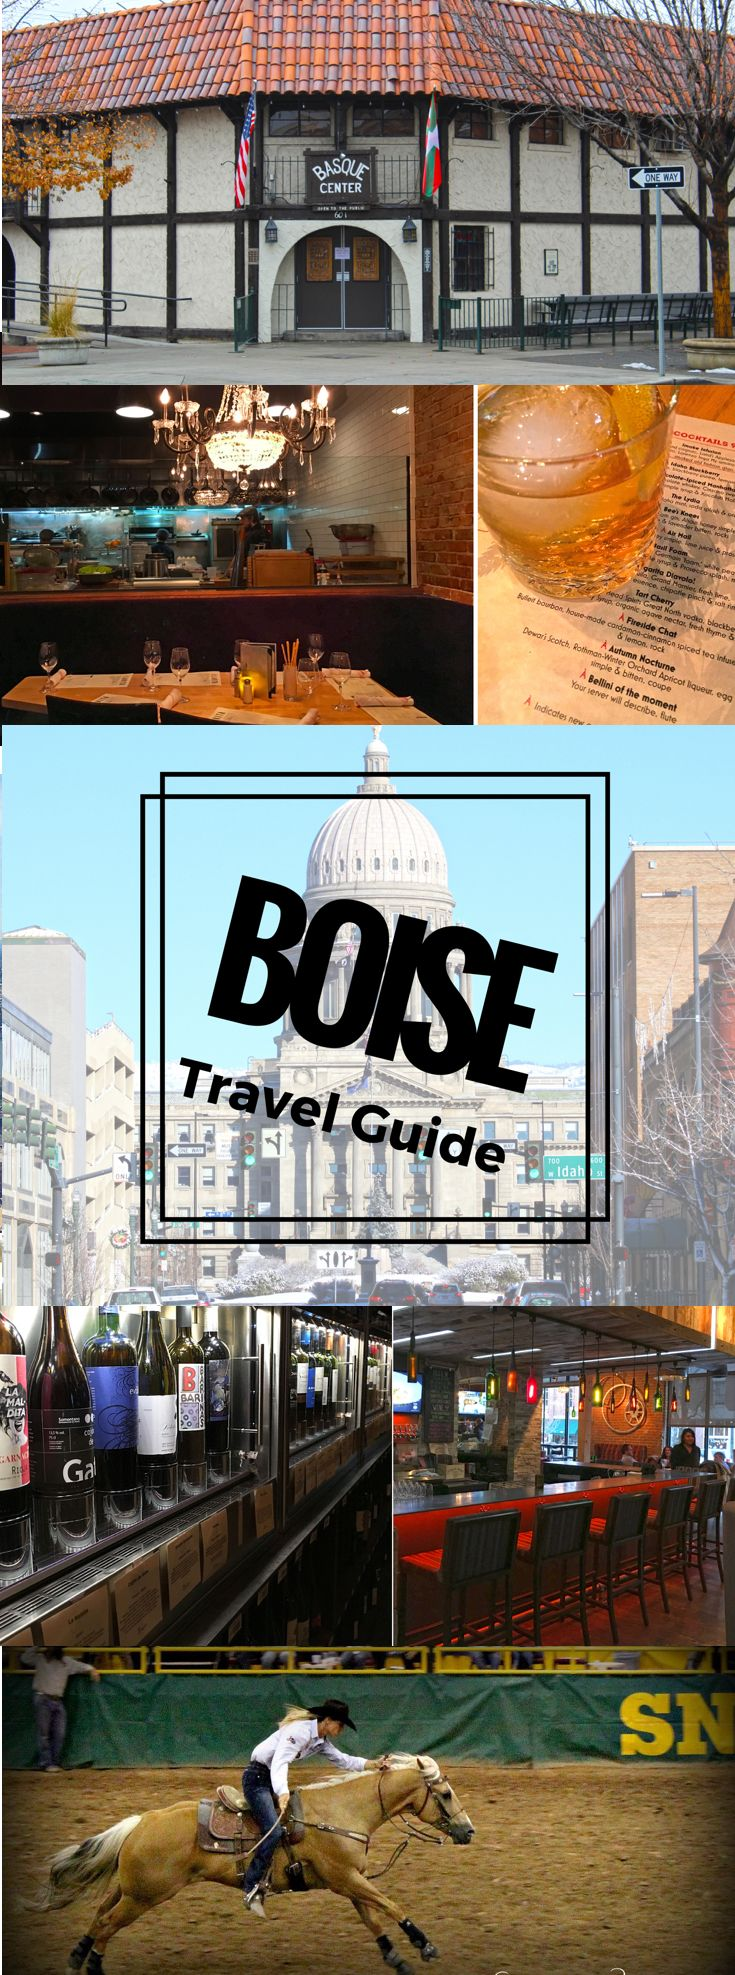 Discover the best things to do in Boise, Idaho with this Boise travel guide. Included are best Boise restaurants, best bars, Boise events and more. @visitidaho